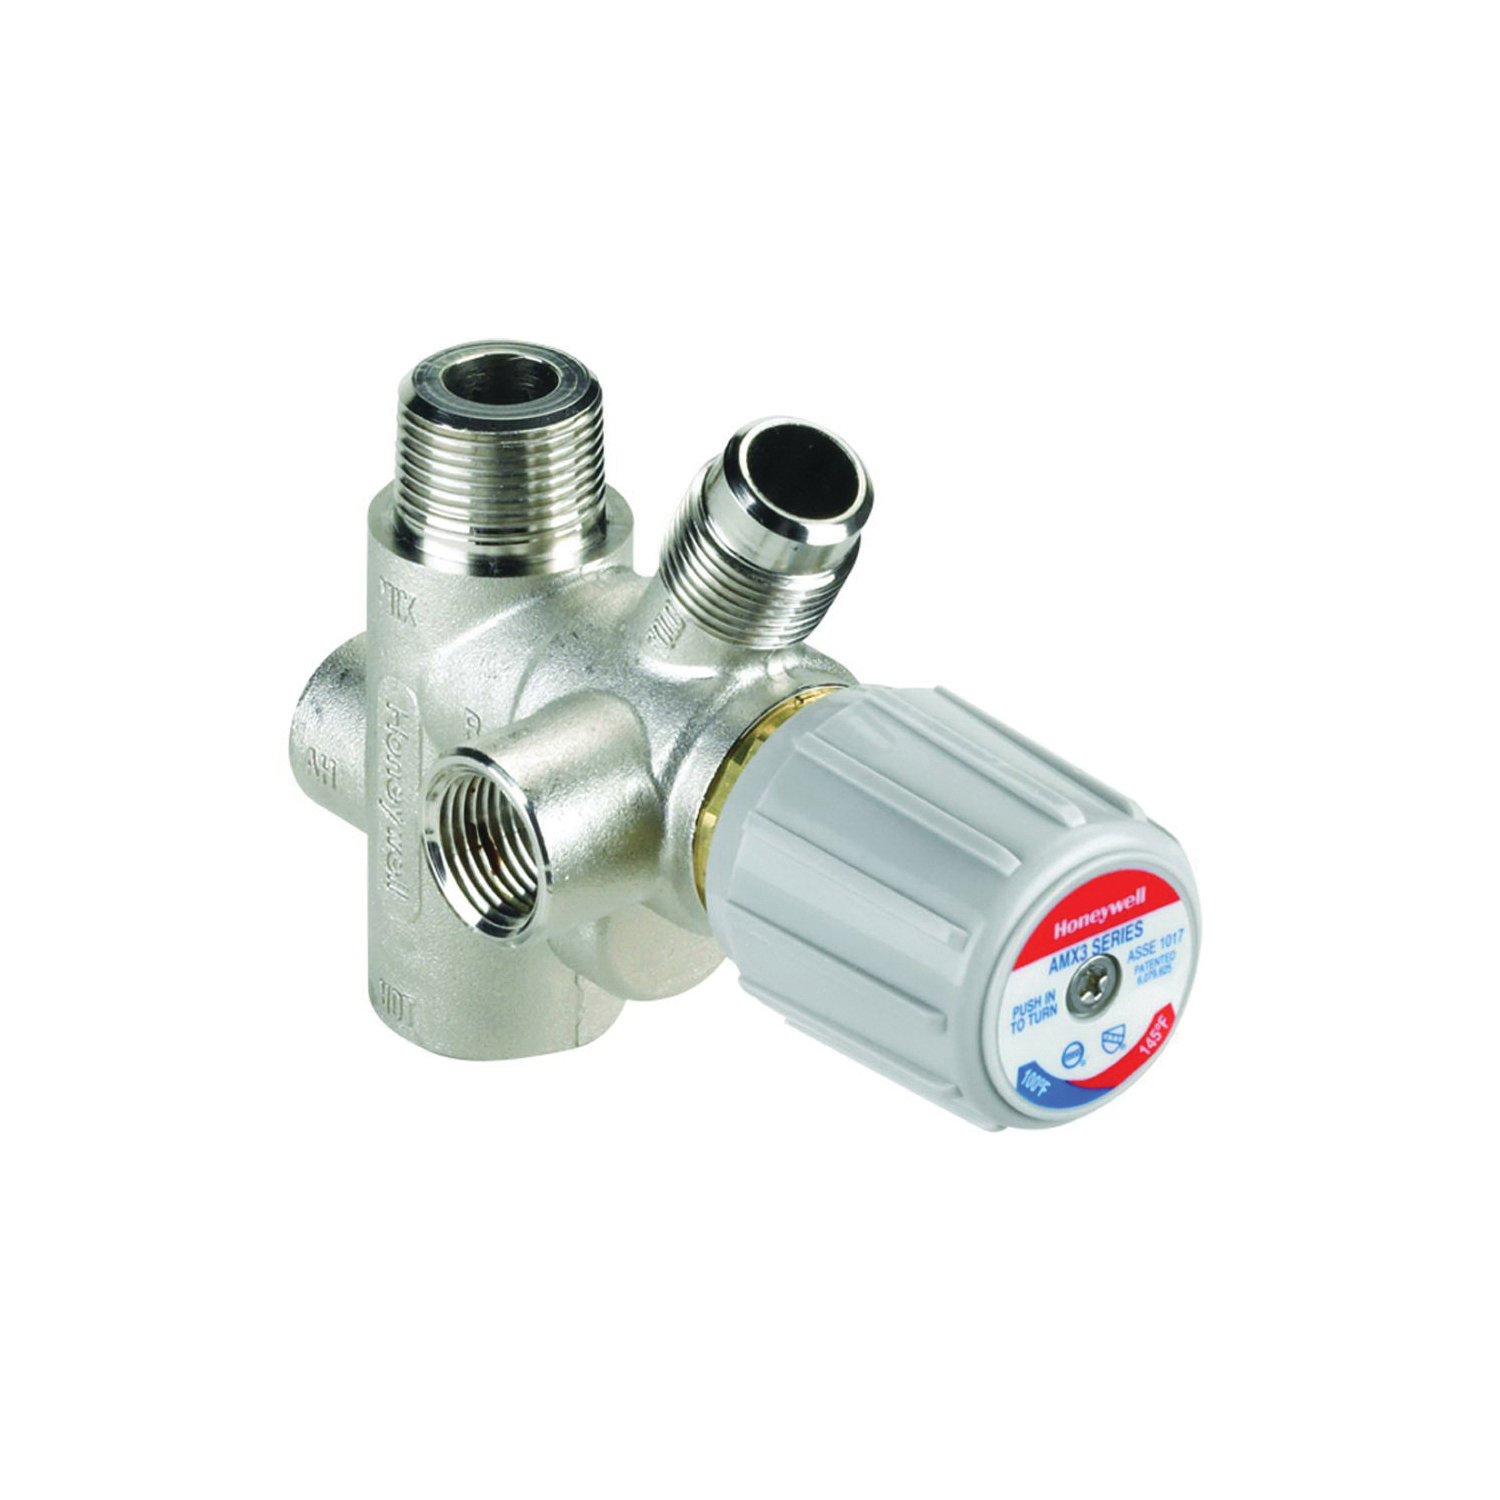 Honeywell AMX300LF/U Low Lead Replacement Mixing Valve, 3/4 in, Brass/Stainless Steel Body, Domestic